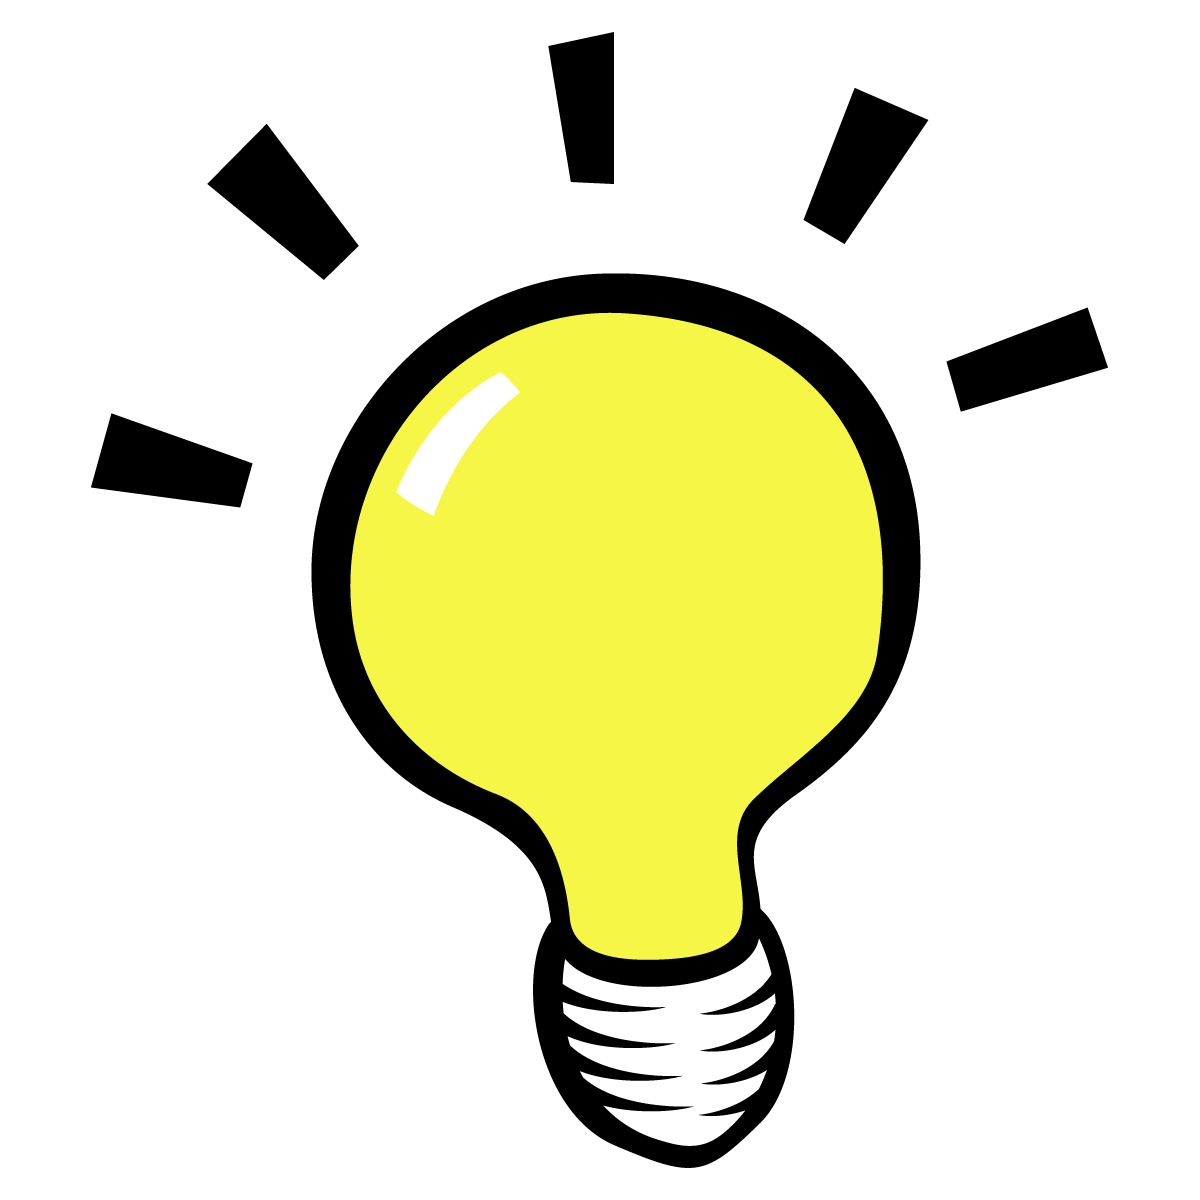 Pictures Of Light Bulbs Clipart | Free download best Pictures Of ... for Lamp Animation Png  570bof